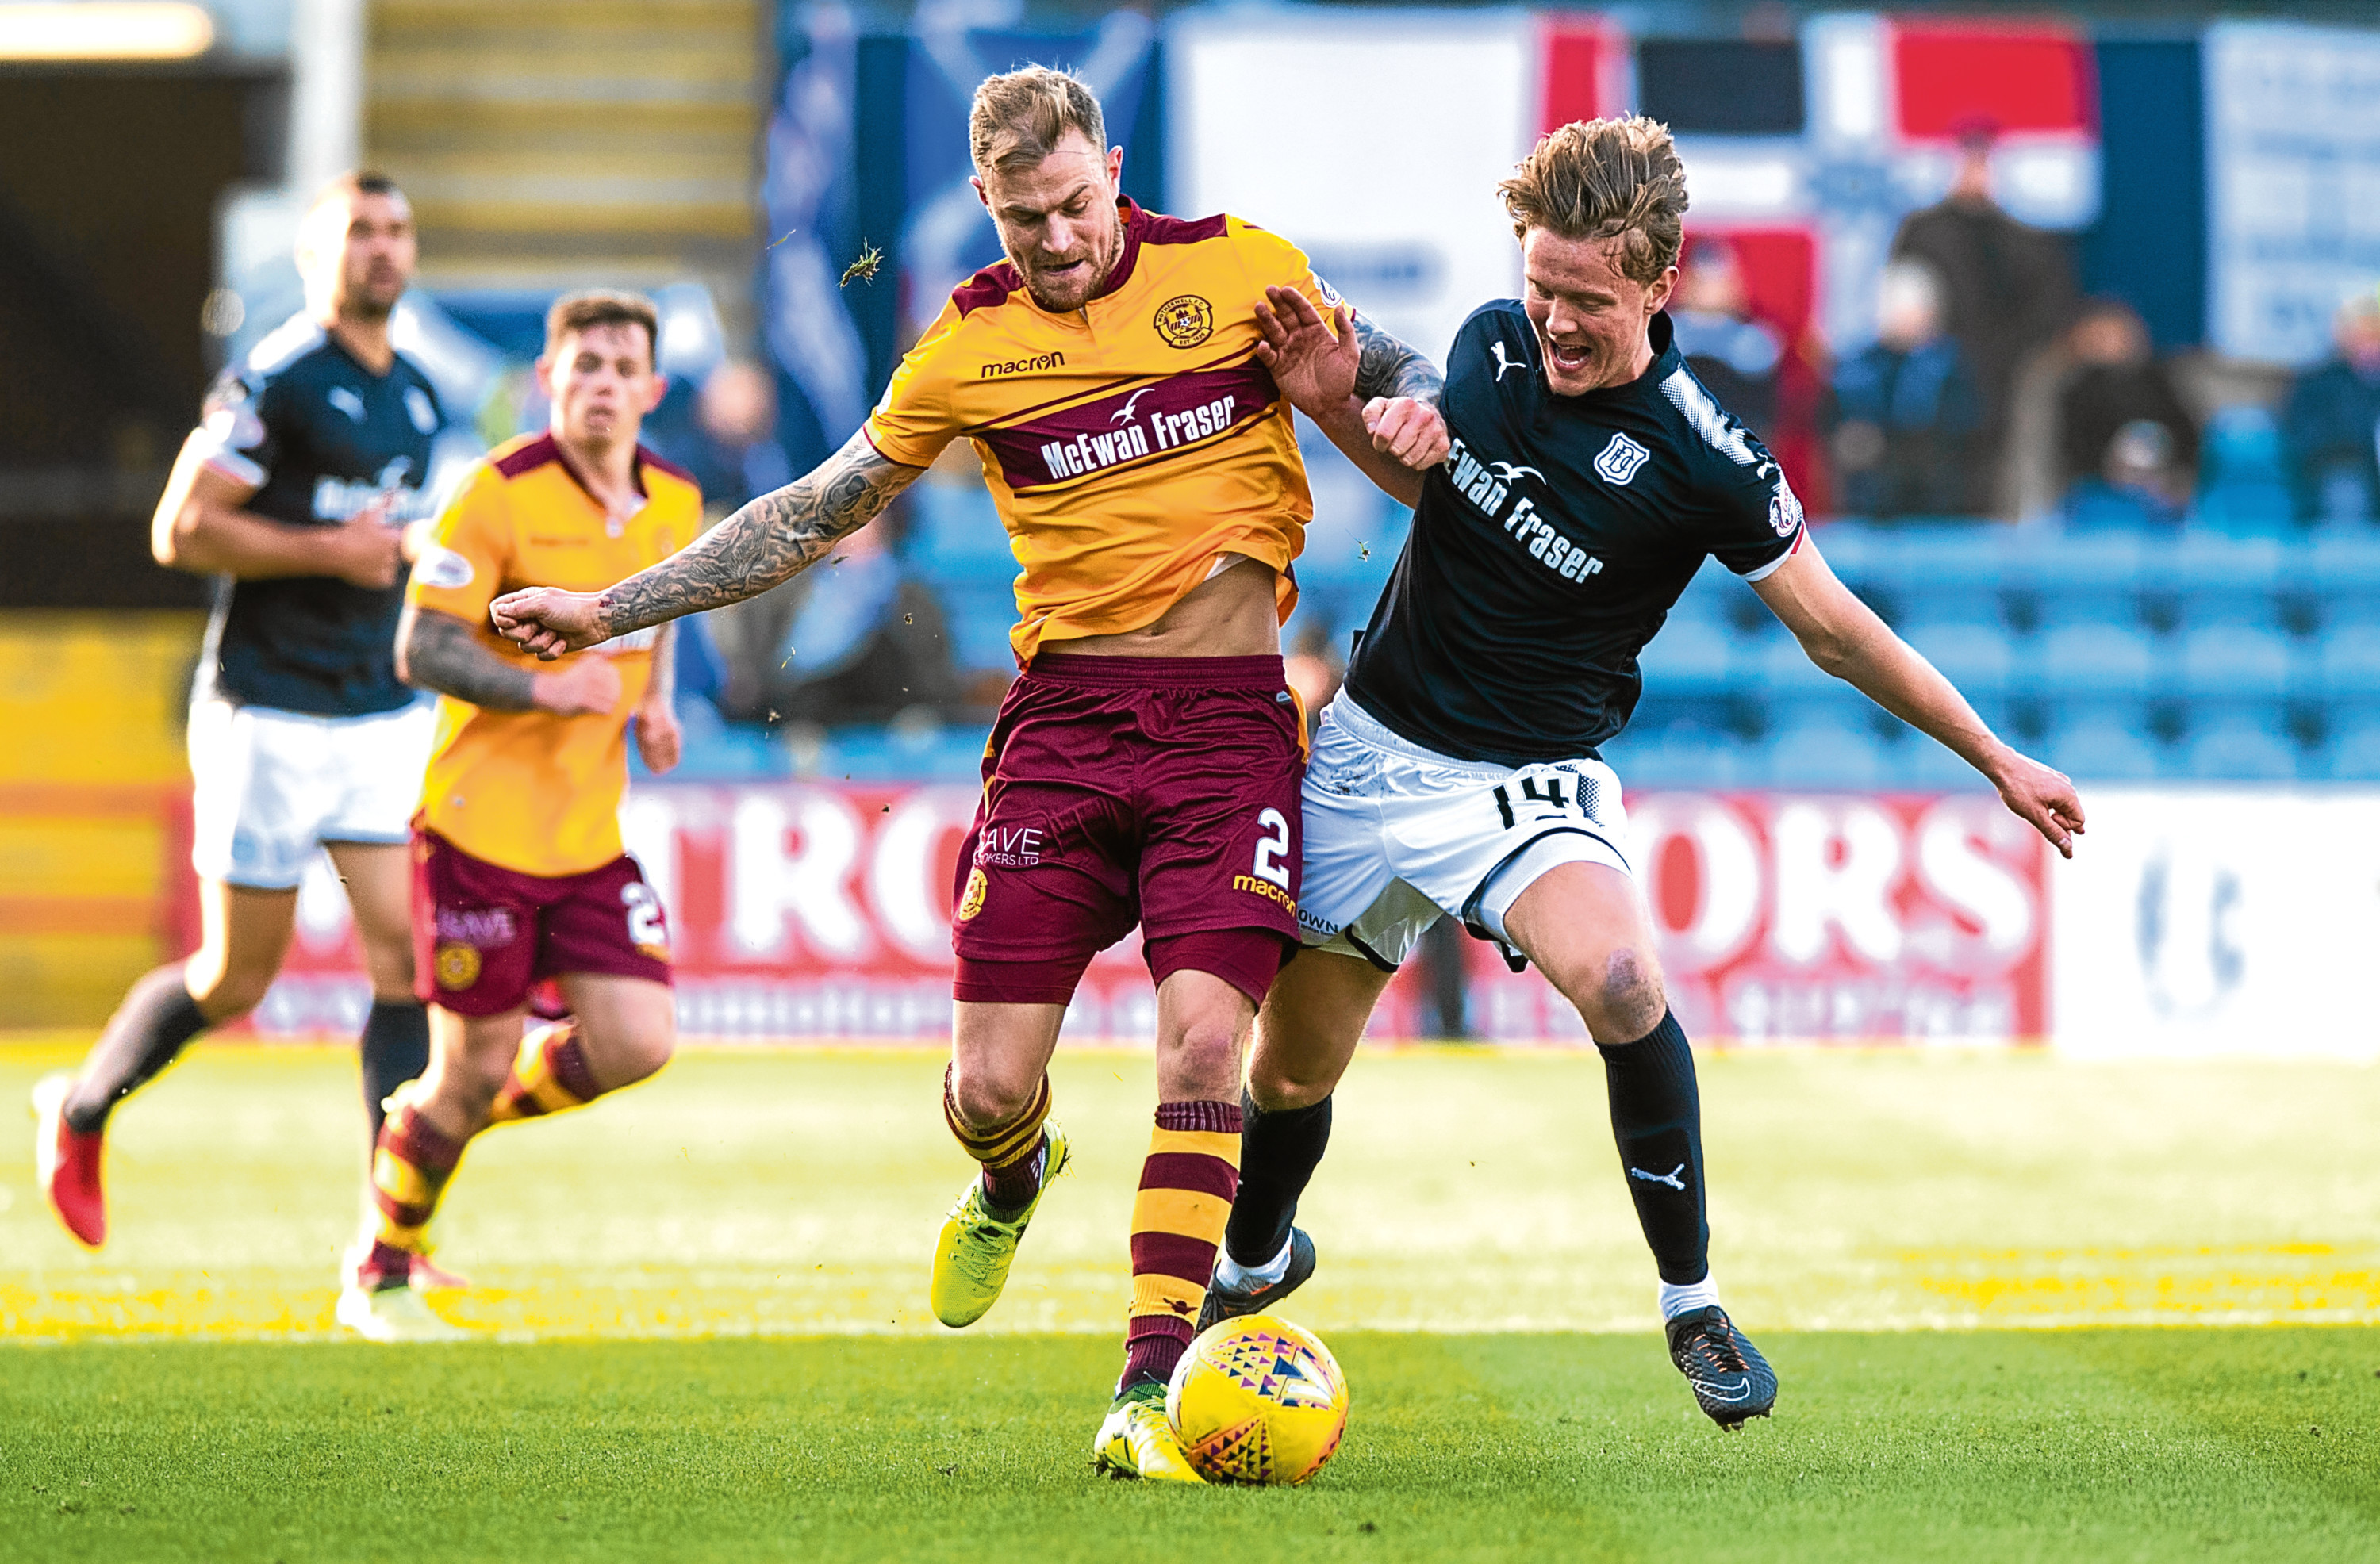 Dundee's versatile midfielder Mark O'Hara knows everyone will have to be at 100% if the Dark Blues are going to pick up what would be a vital three points at Motherwell tomorrow.